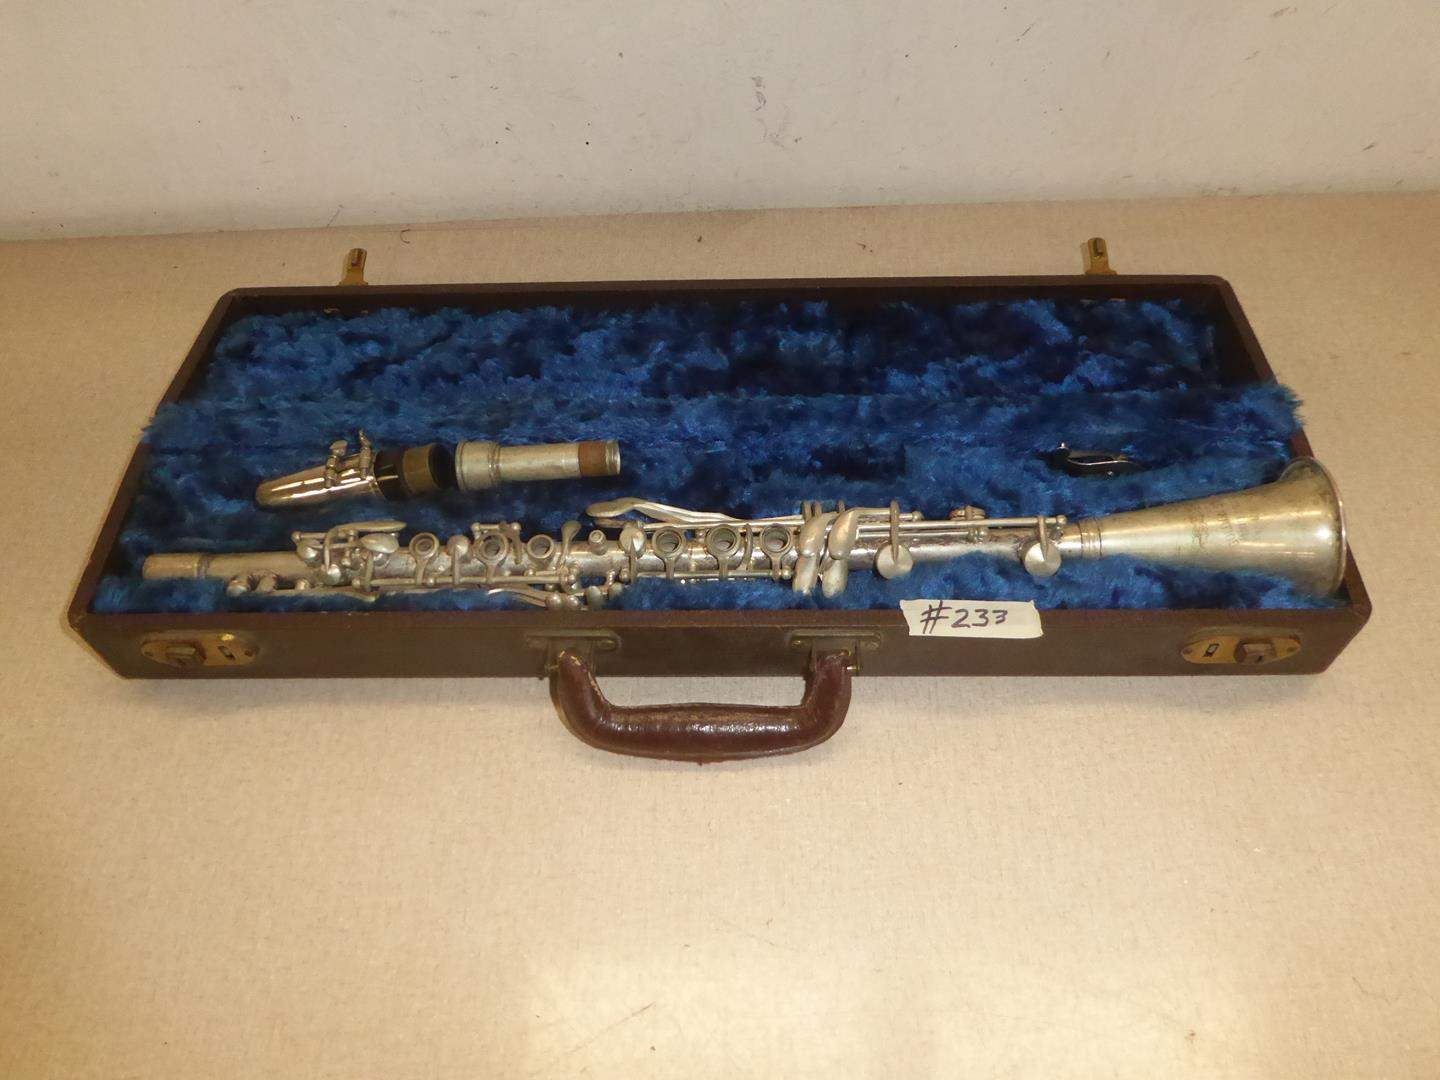 Lot # 233 - Vintage Golden State Professional USA Clarinet w/Case (main image)